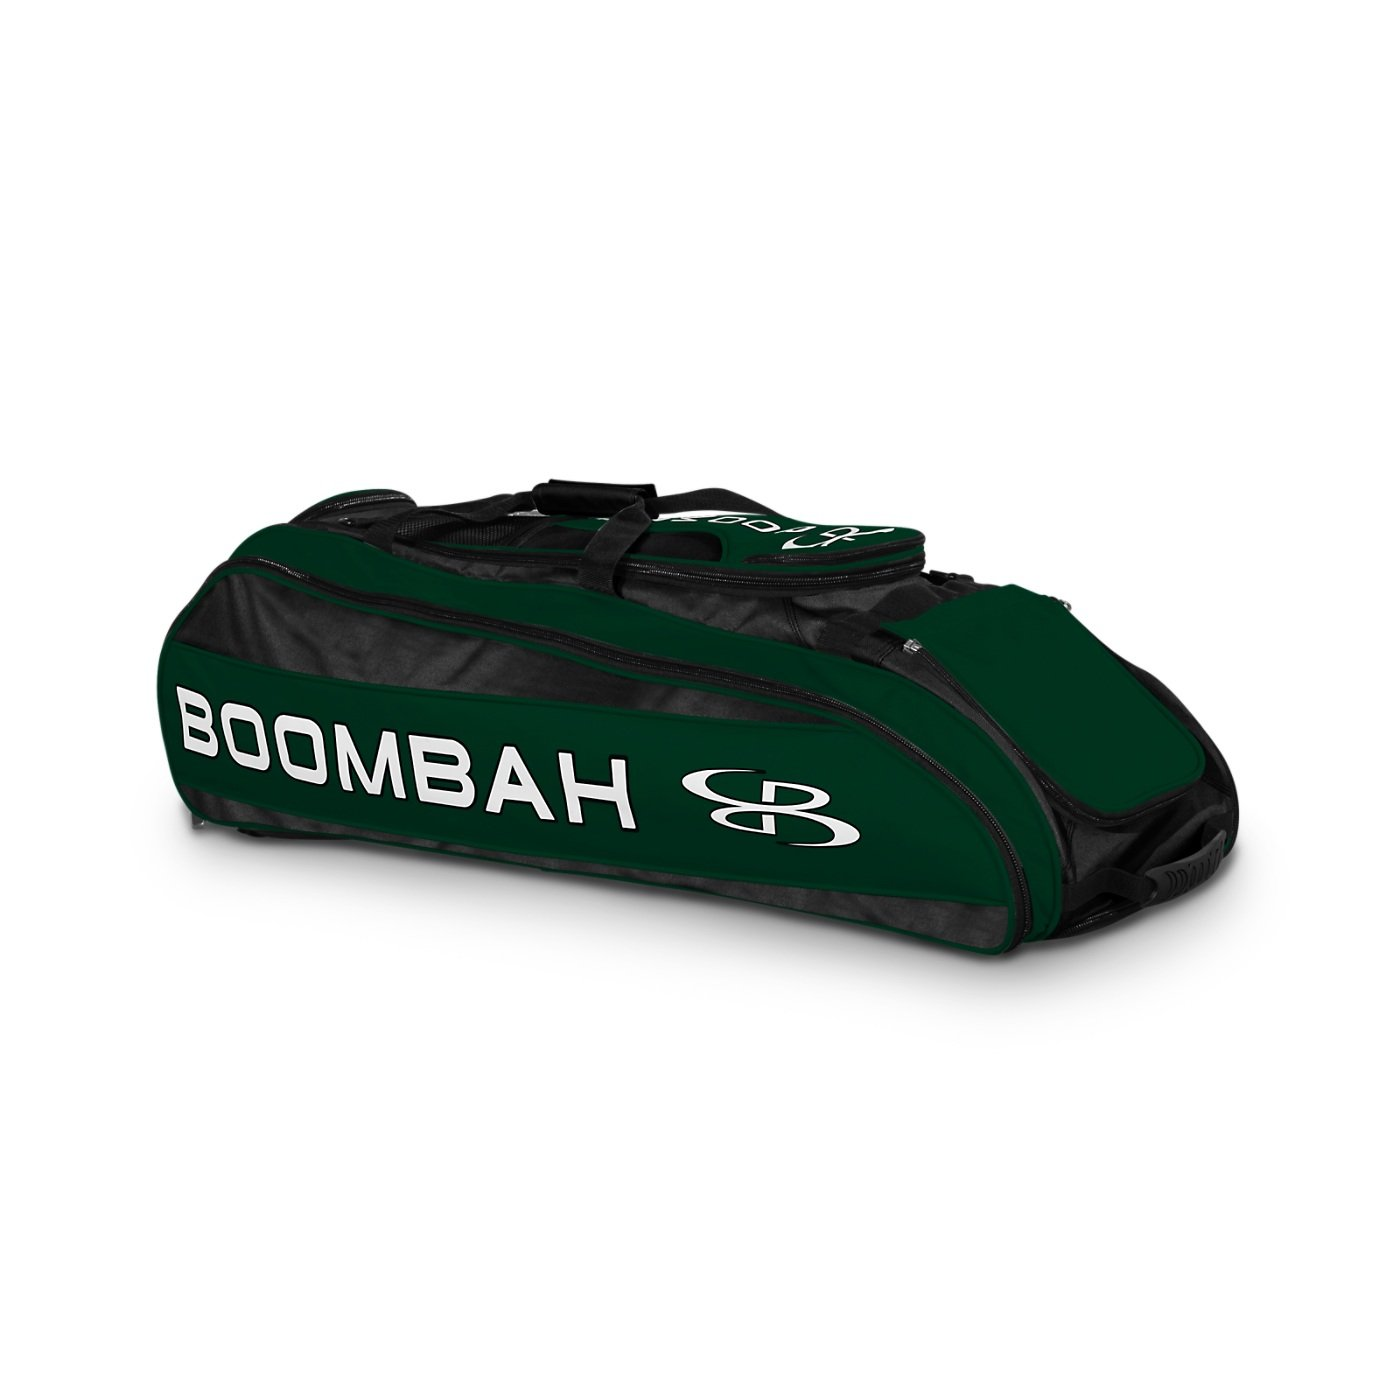 Boombah Beast Baseball/Softball Bat Bag - 40'' x 14'' x 13'' - Black/Dk Green - Holds 8 Bats, Glove & Shoe Compartments by Boombah (Image #1)